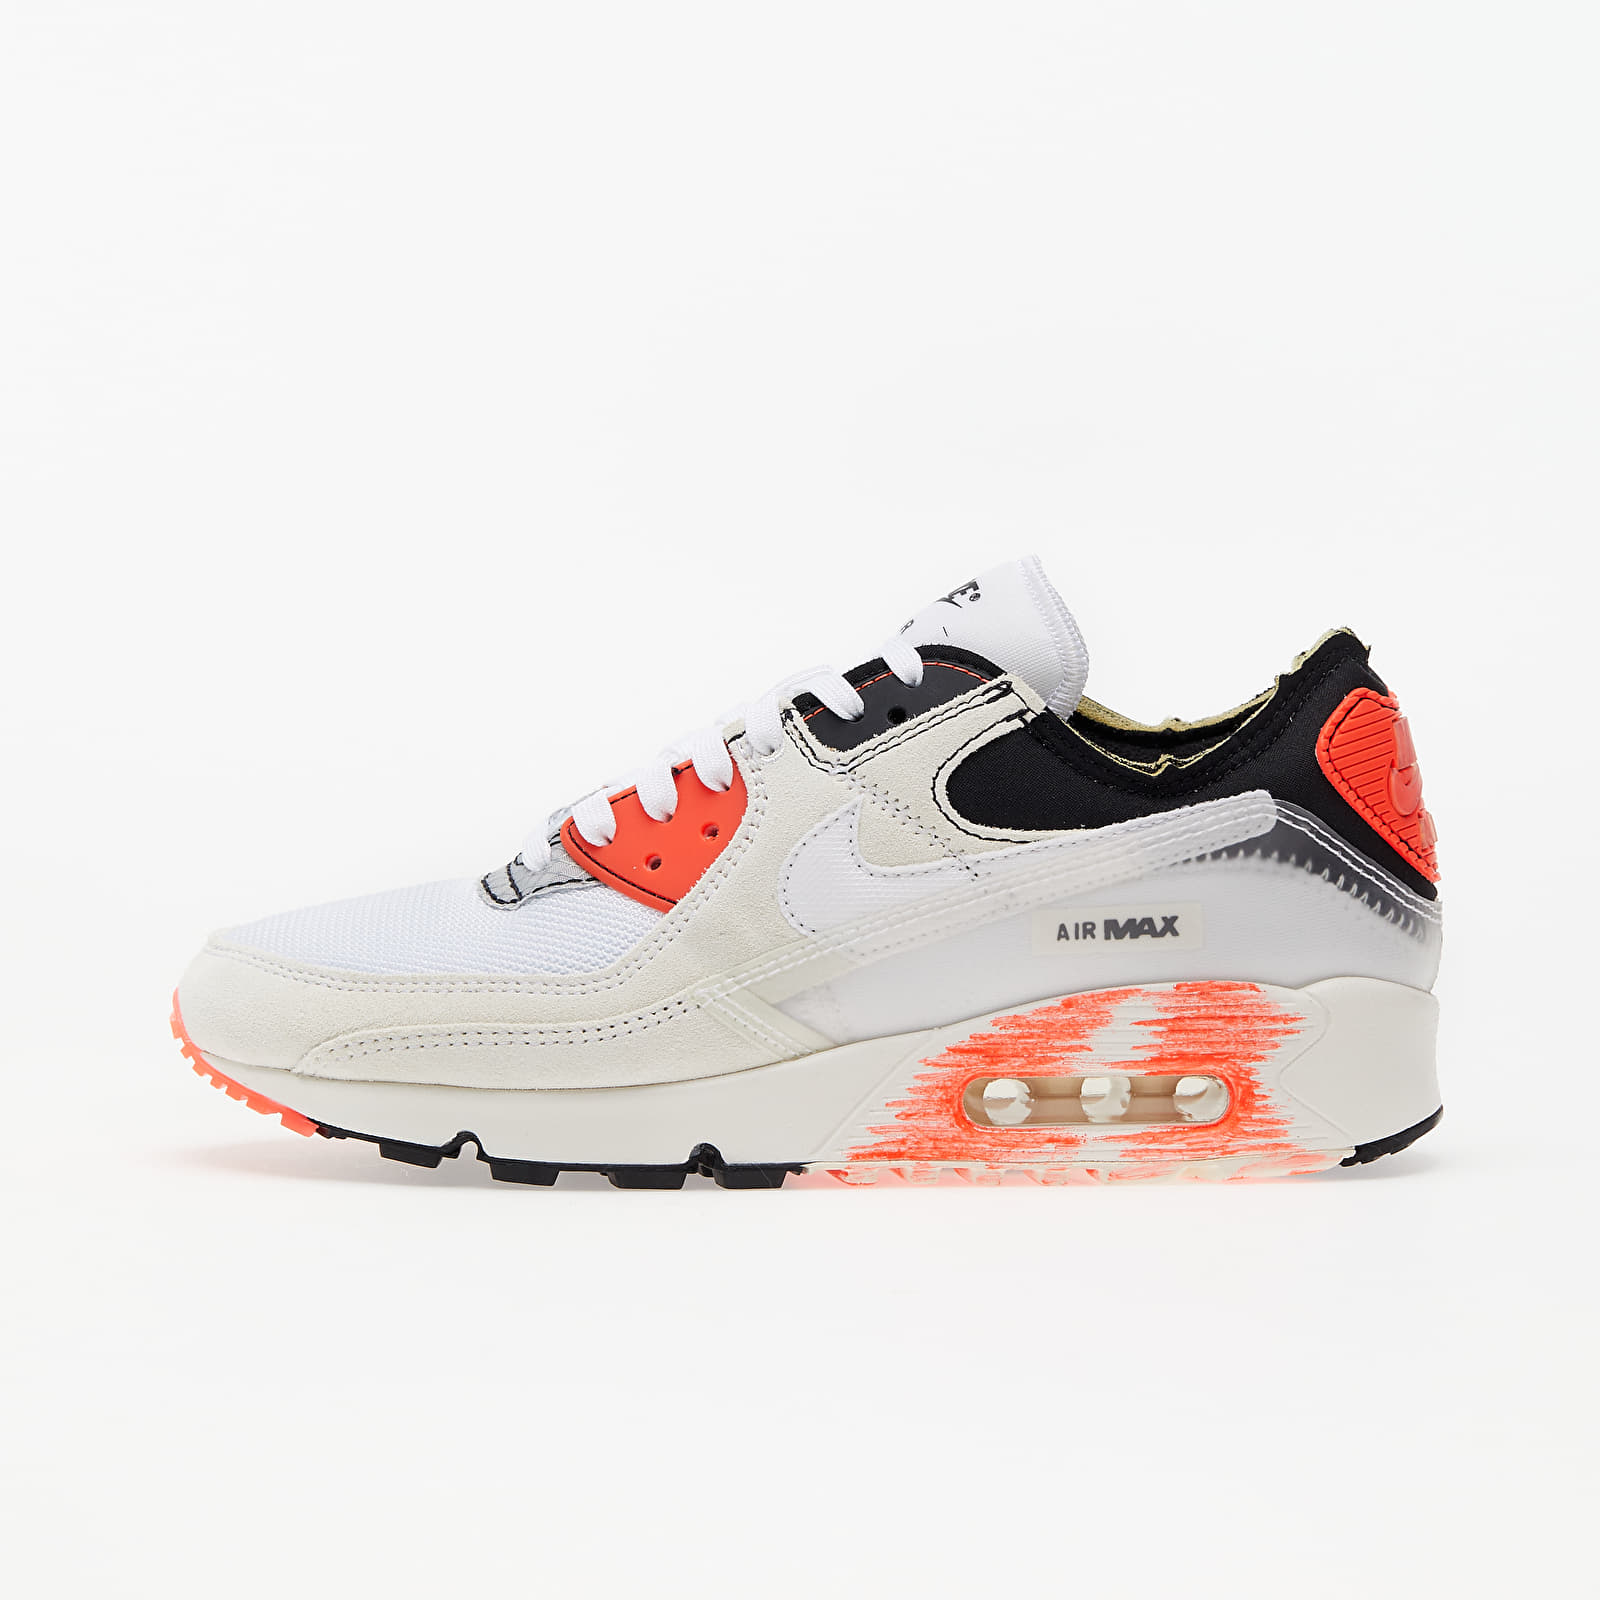 Nike Air Max III Premium White/ White-Black-Bright Crimson EUR 41